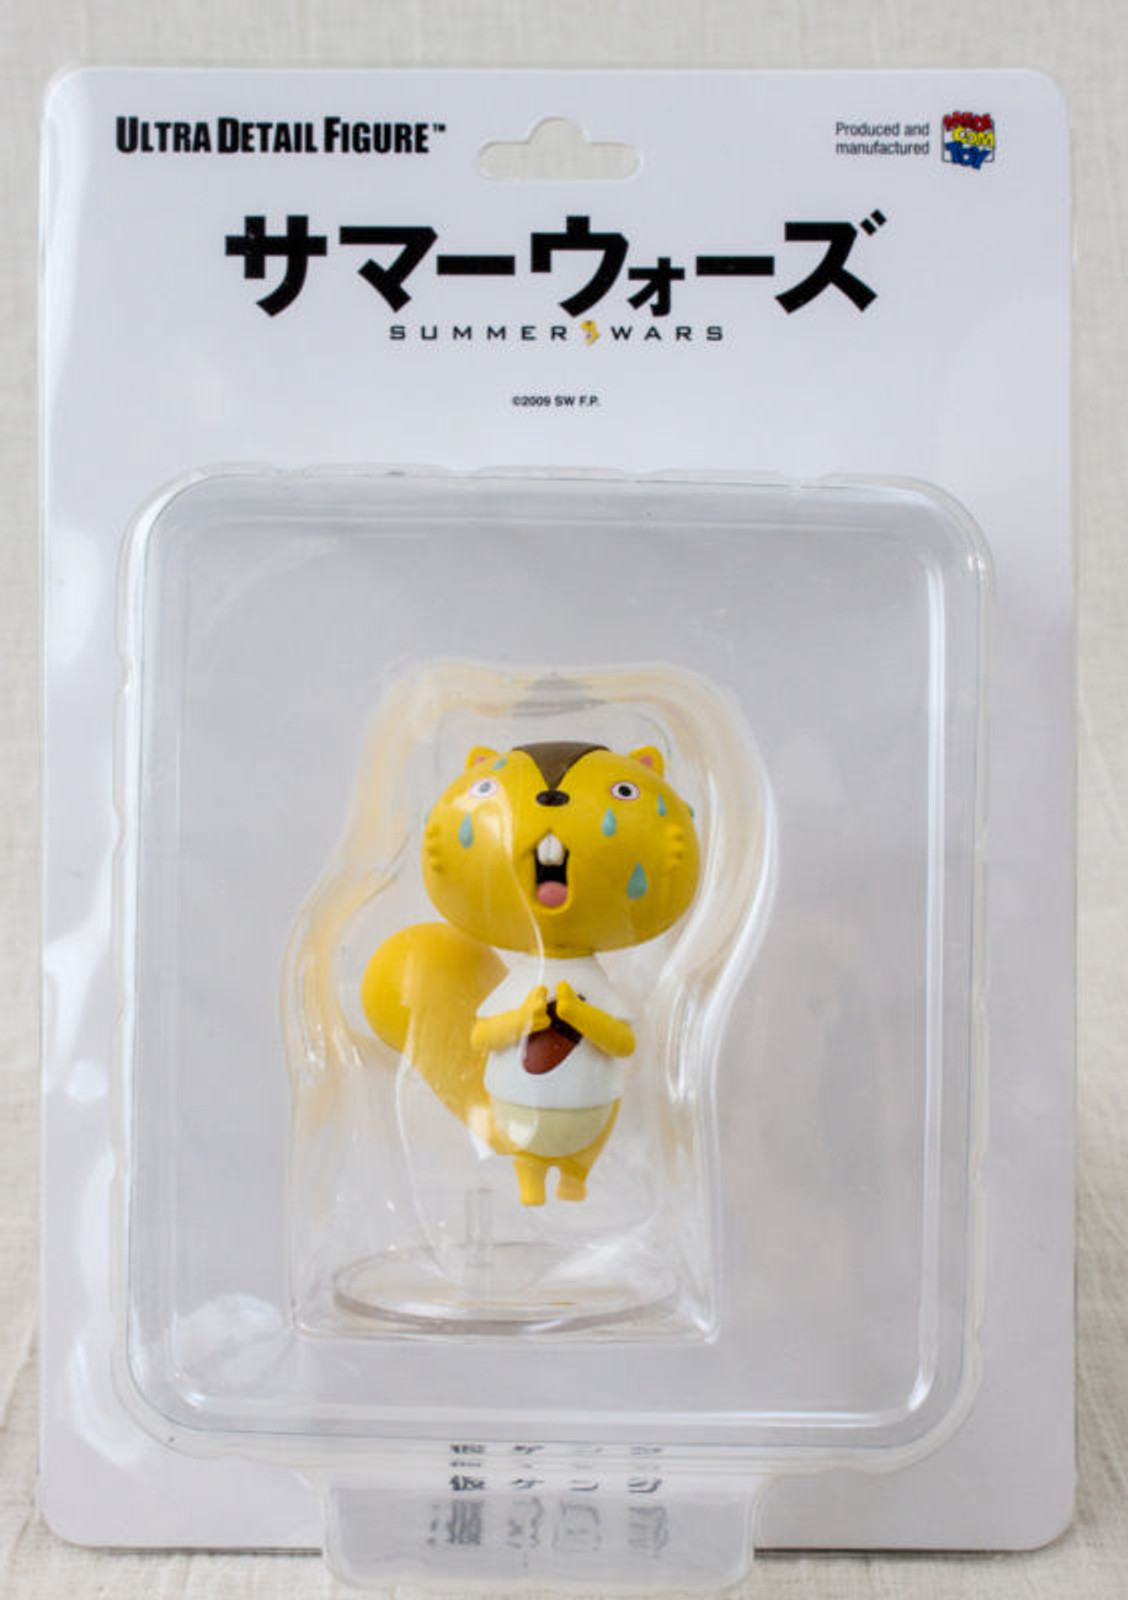 Summer Wars Provisional Kenji Ultra Detail Figure UDF Medicom Toy JAPAN ANIME